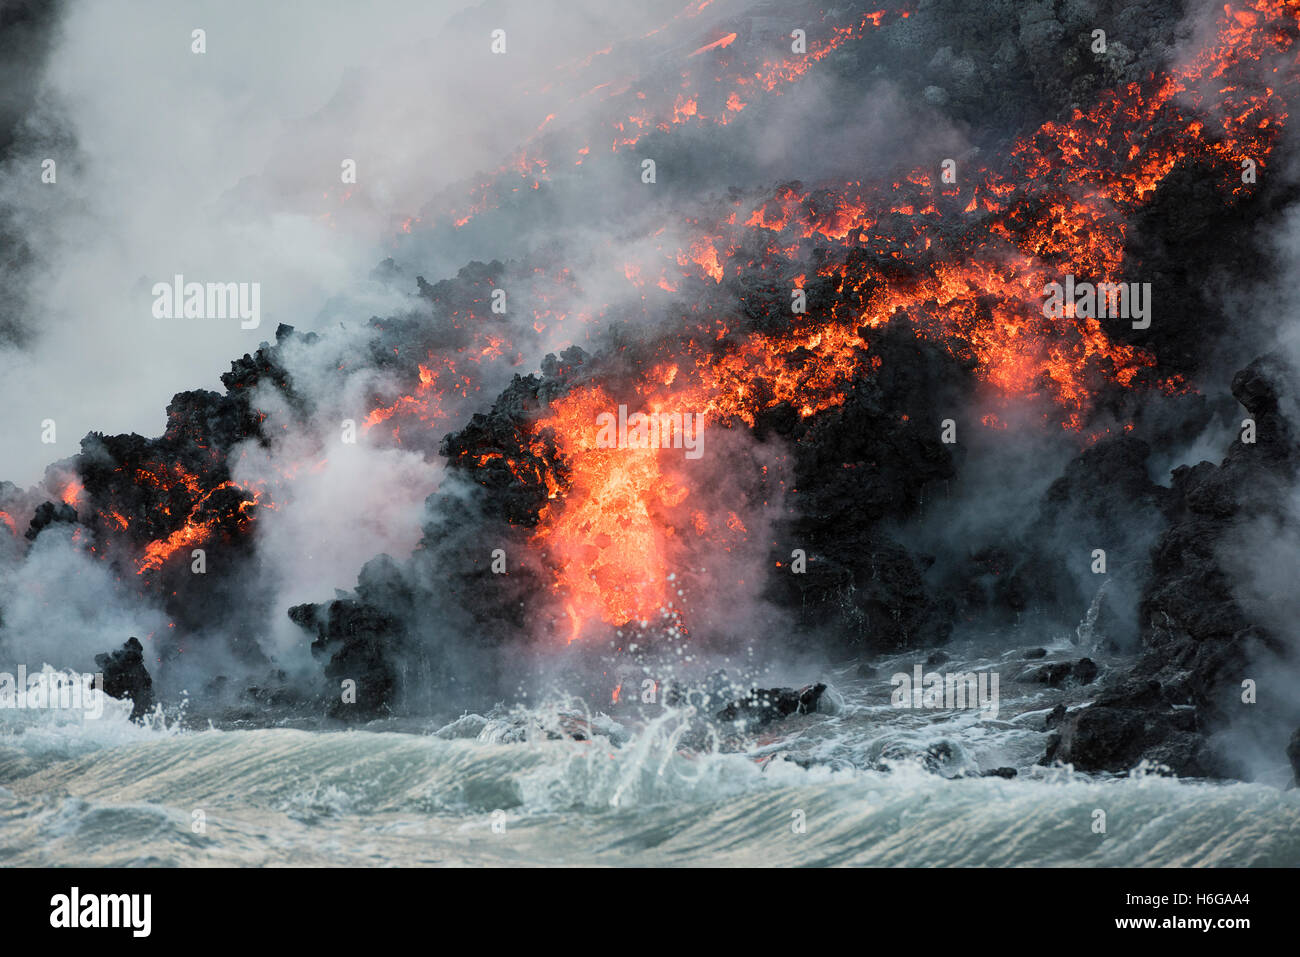 hot a'a lava from Kilauea Volcano, reaches the ocean at Kamokuna, Kalapana, Hawaii Volcanoes National Park - Stock Image